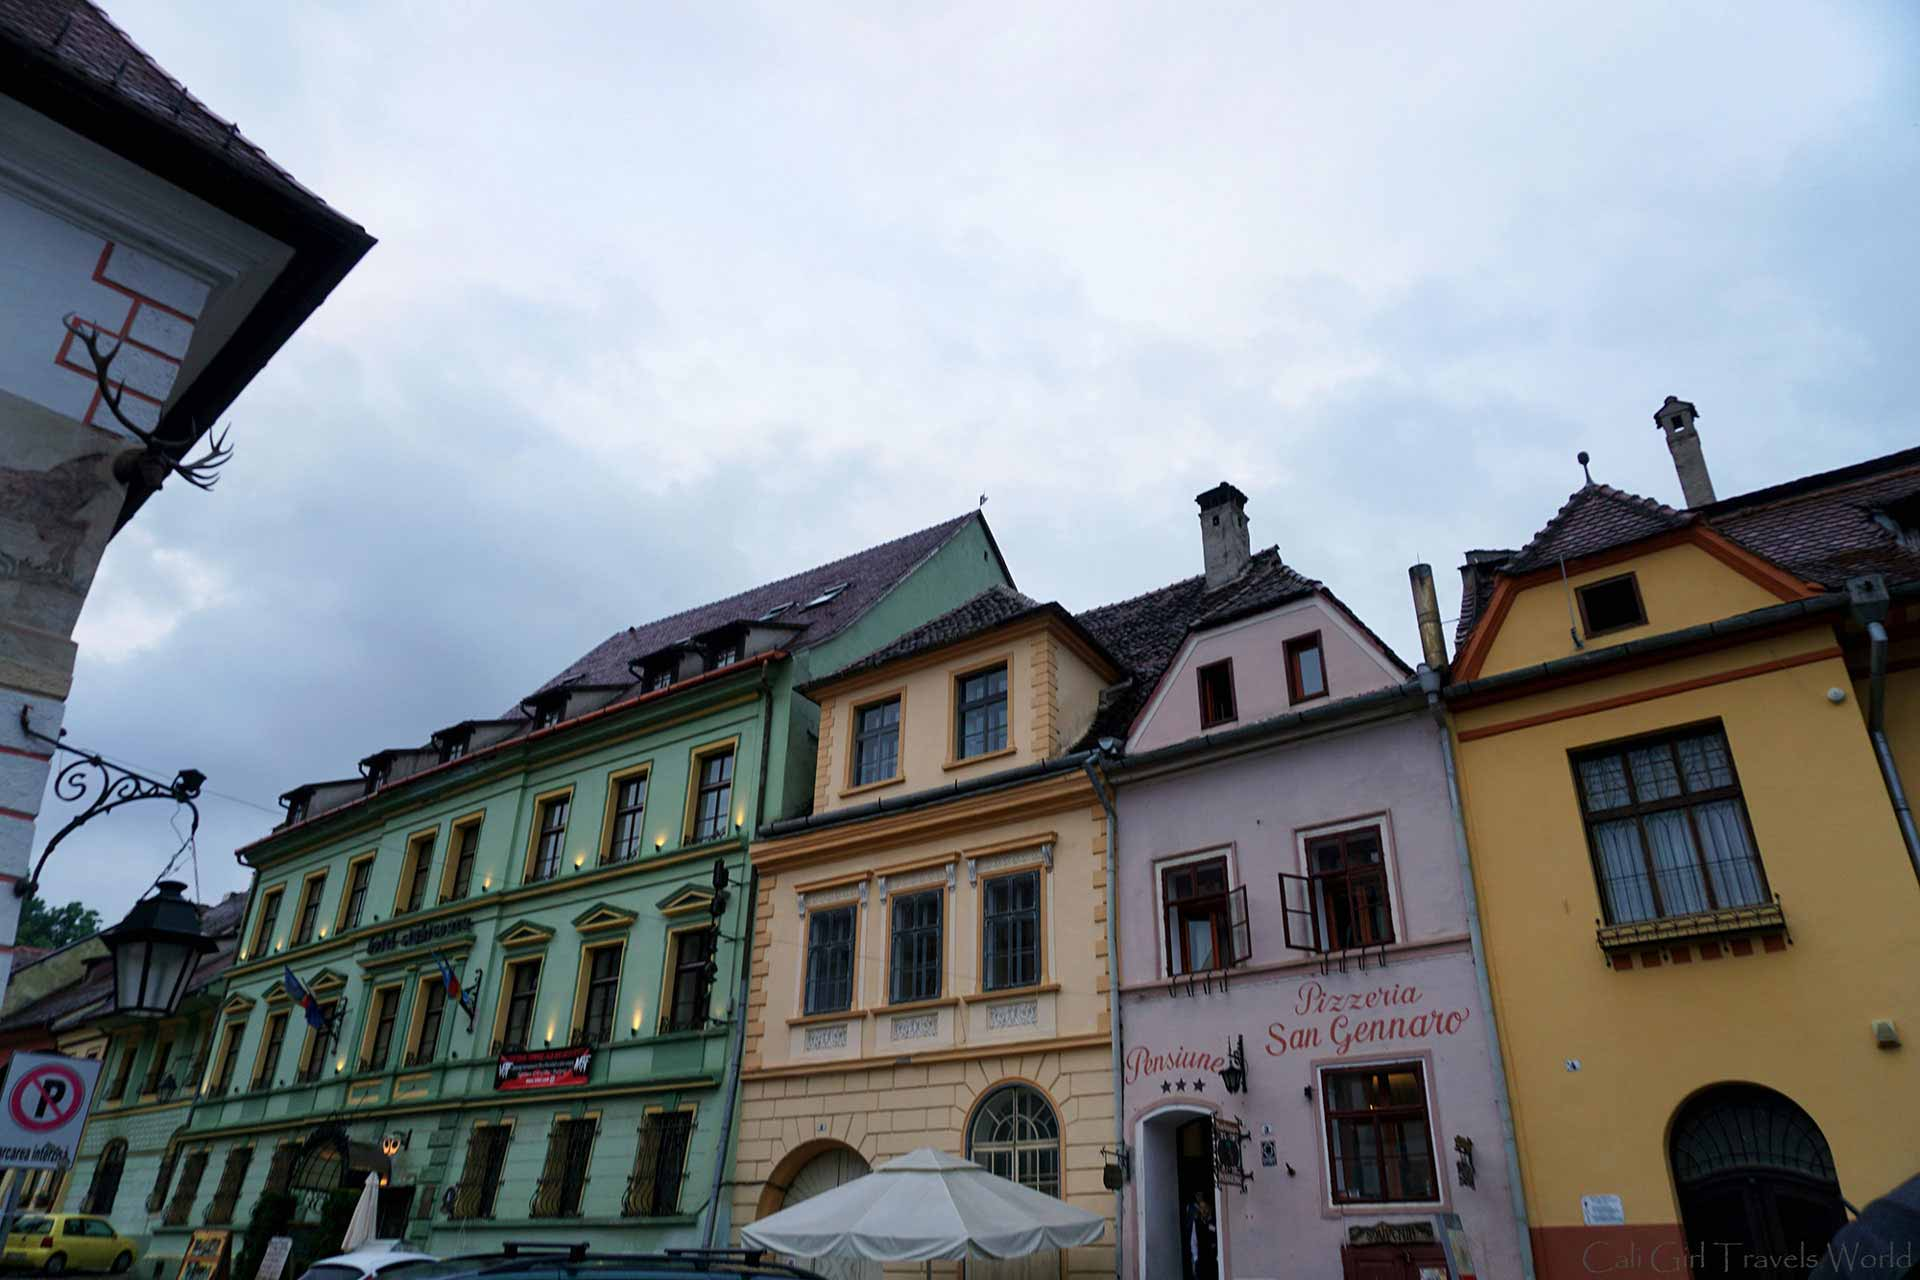 Photos of a few colorful resturants in Sighisoara, Transylvania including a pizzeria.